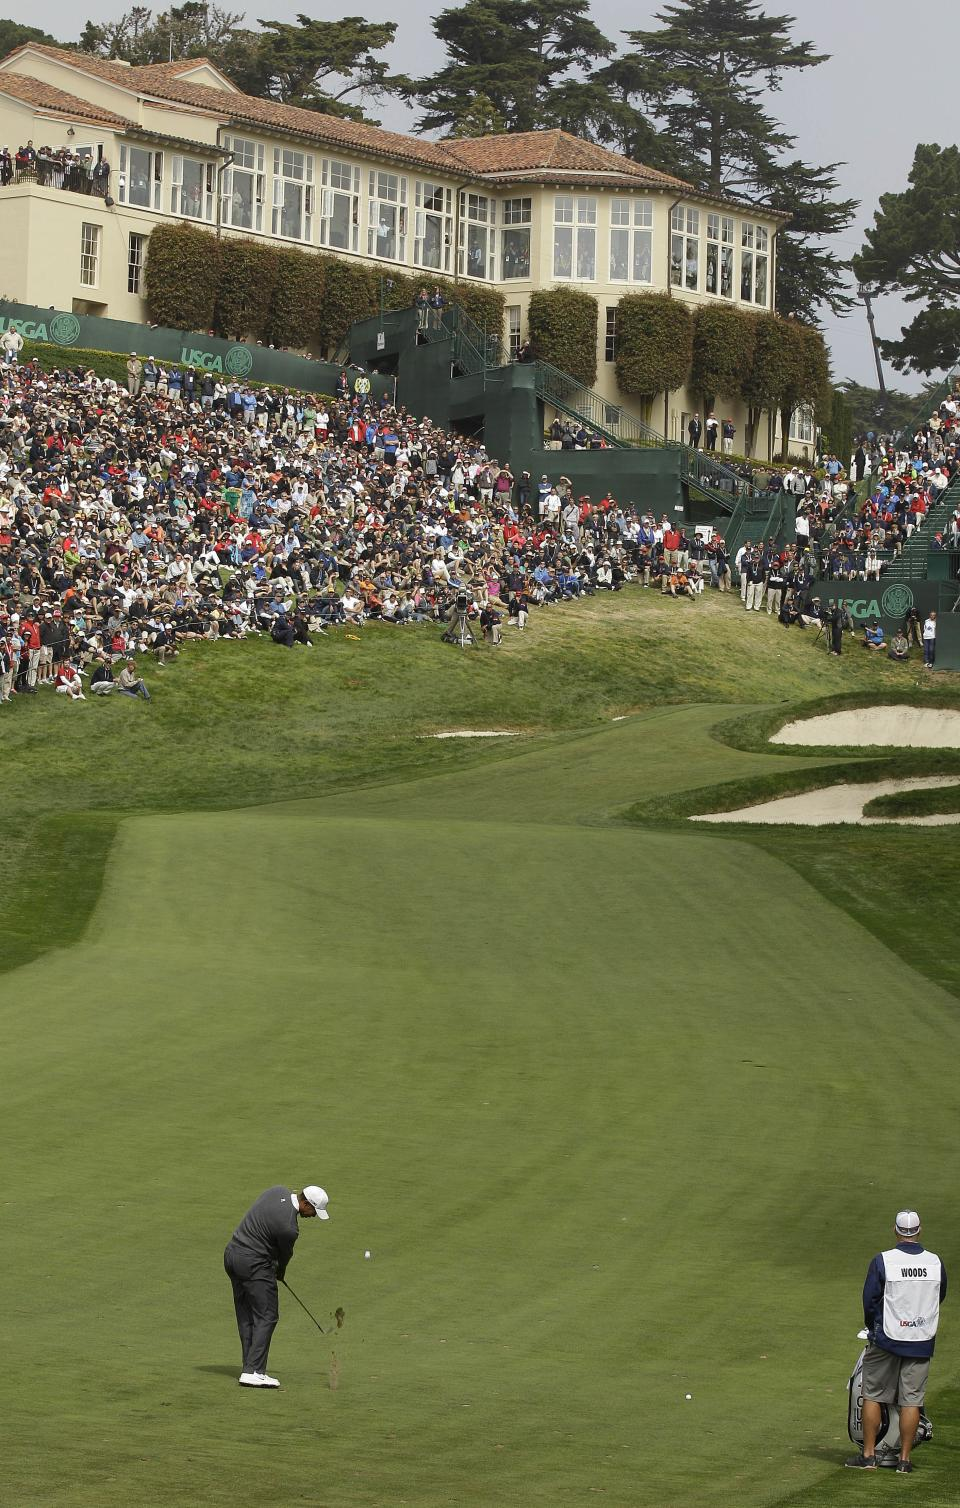 Tiger Woods takes a shot on the 18th hole during the first round of the U.S. Open Championship golf tournament Thursday, June 14, 2012, at The Olympic Club in San Francisco. (AP Photo/Charlie Riedel)